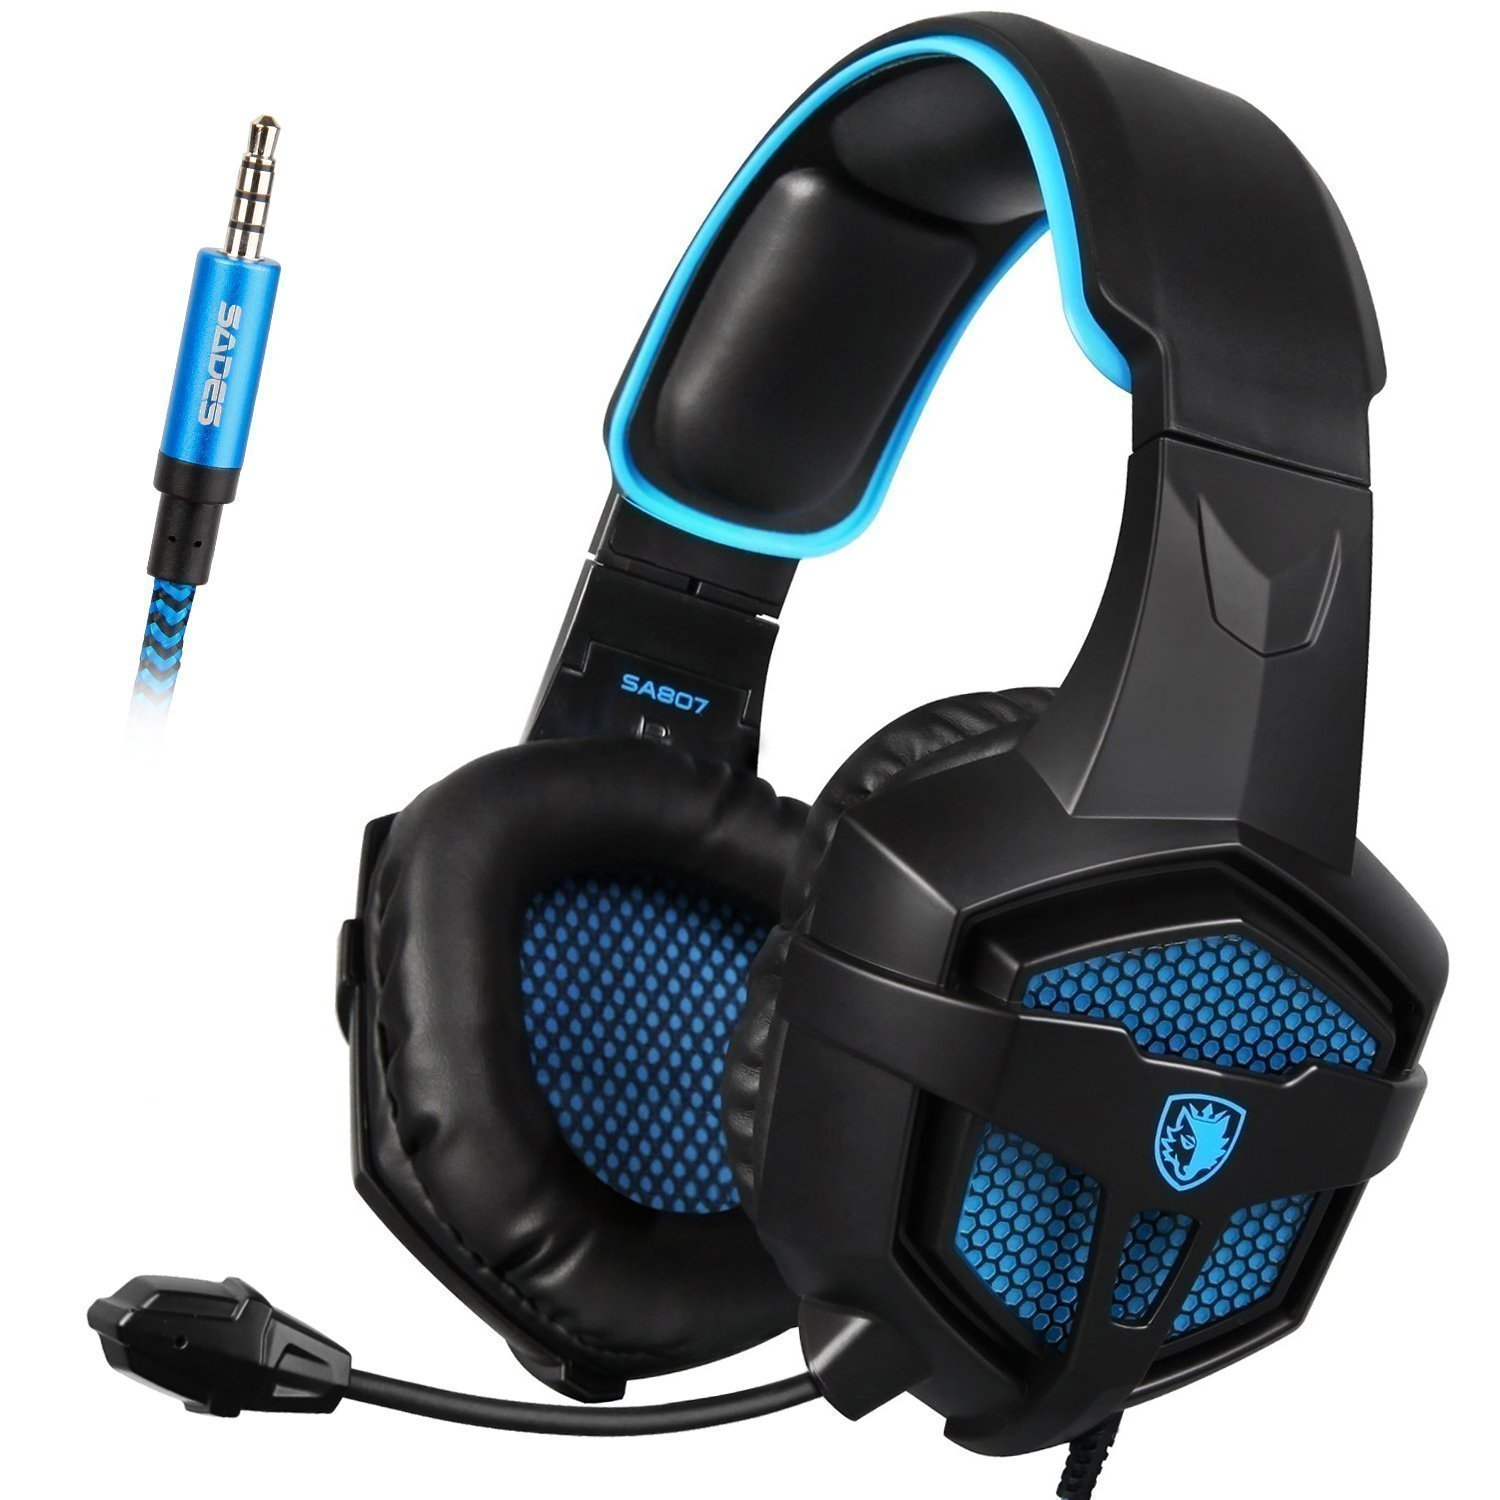 Auriculares Gamer : Sades Sa807 3.5mm Wired Multi-platform